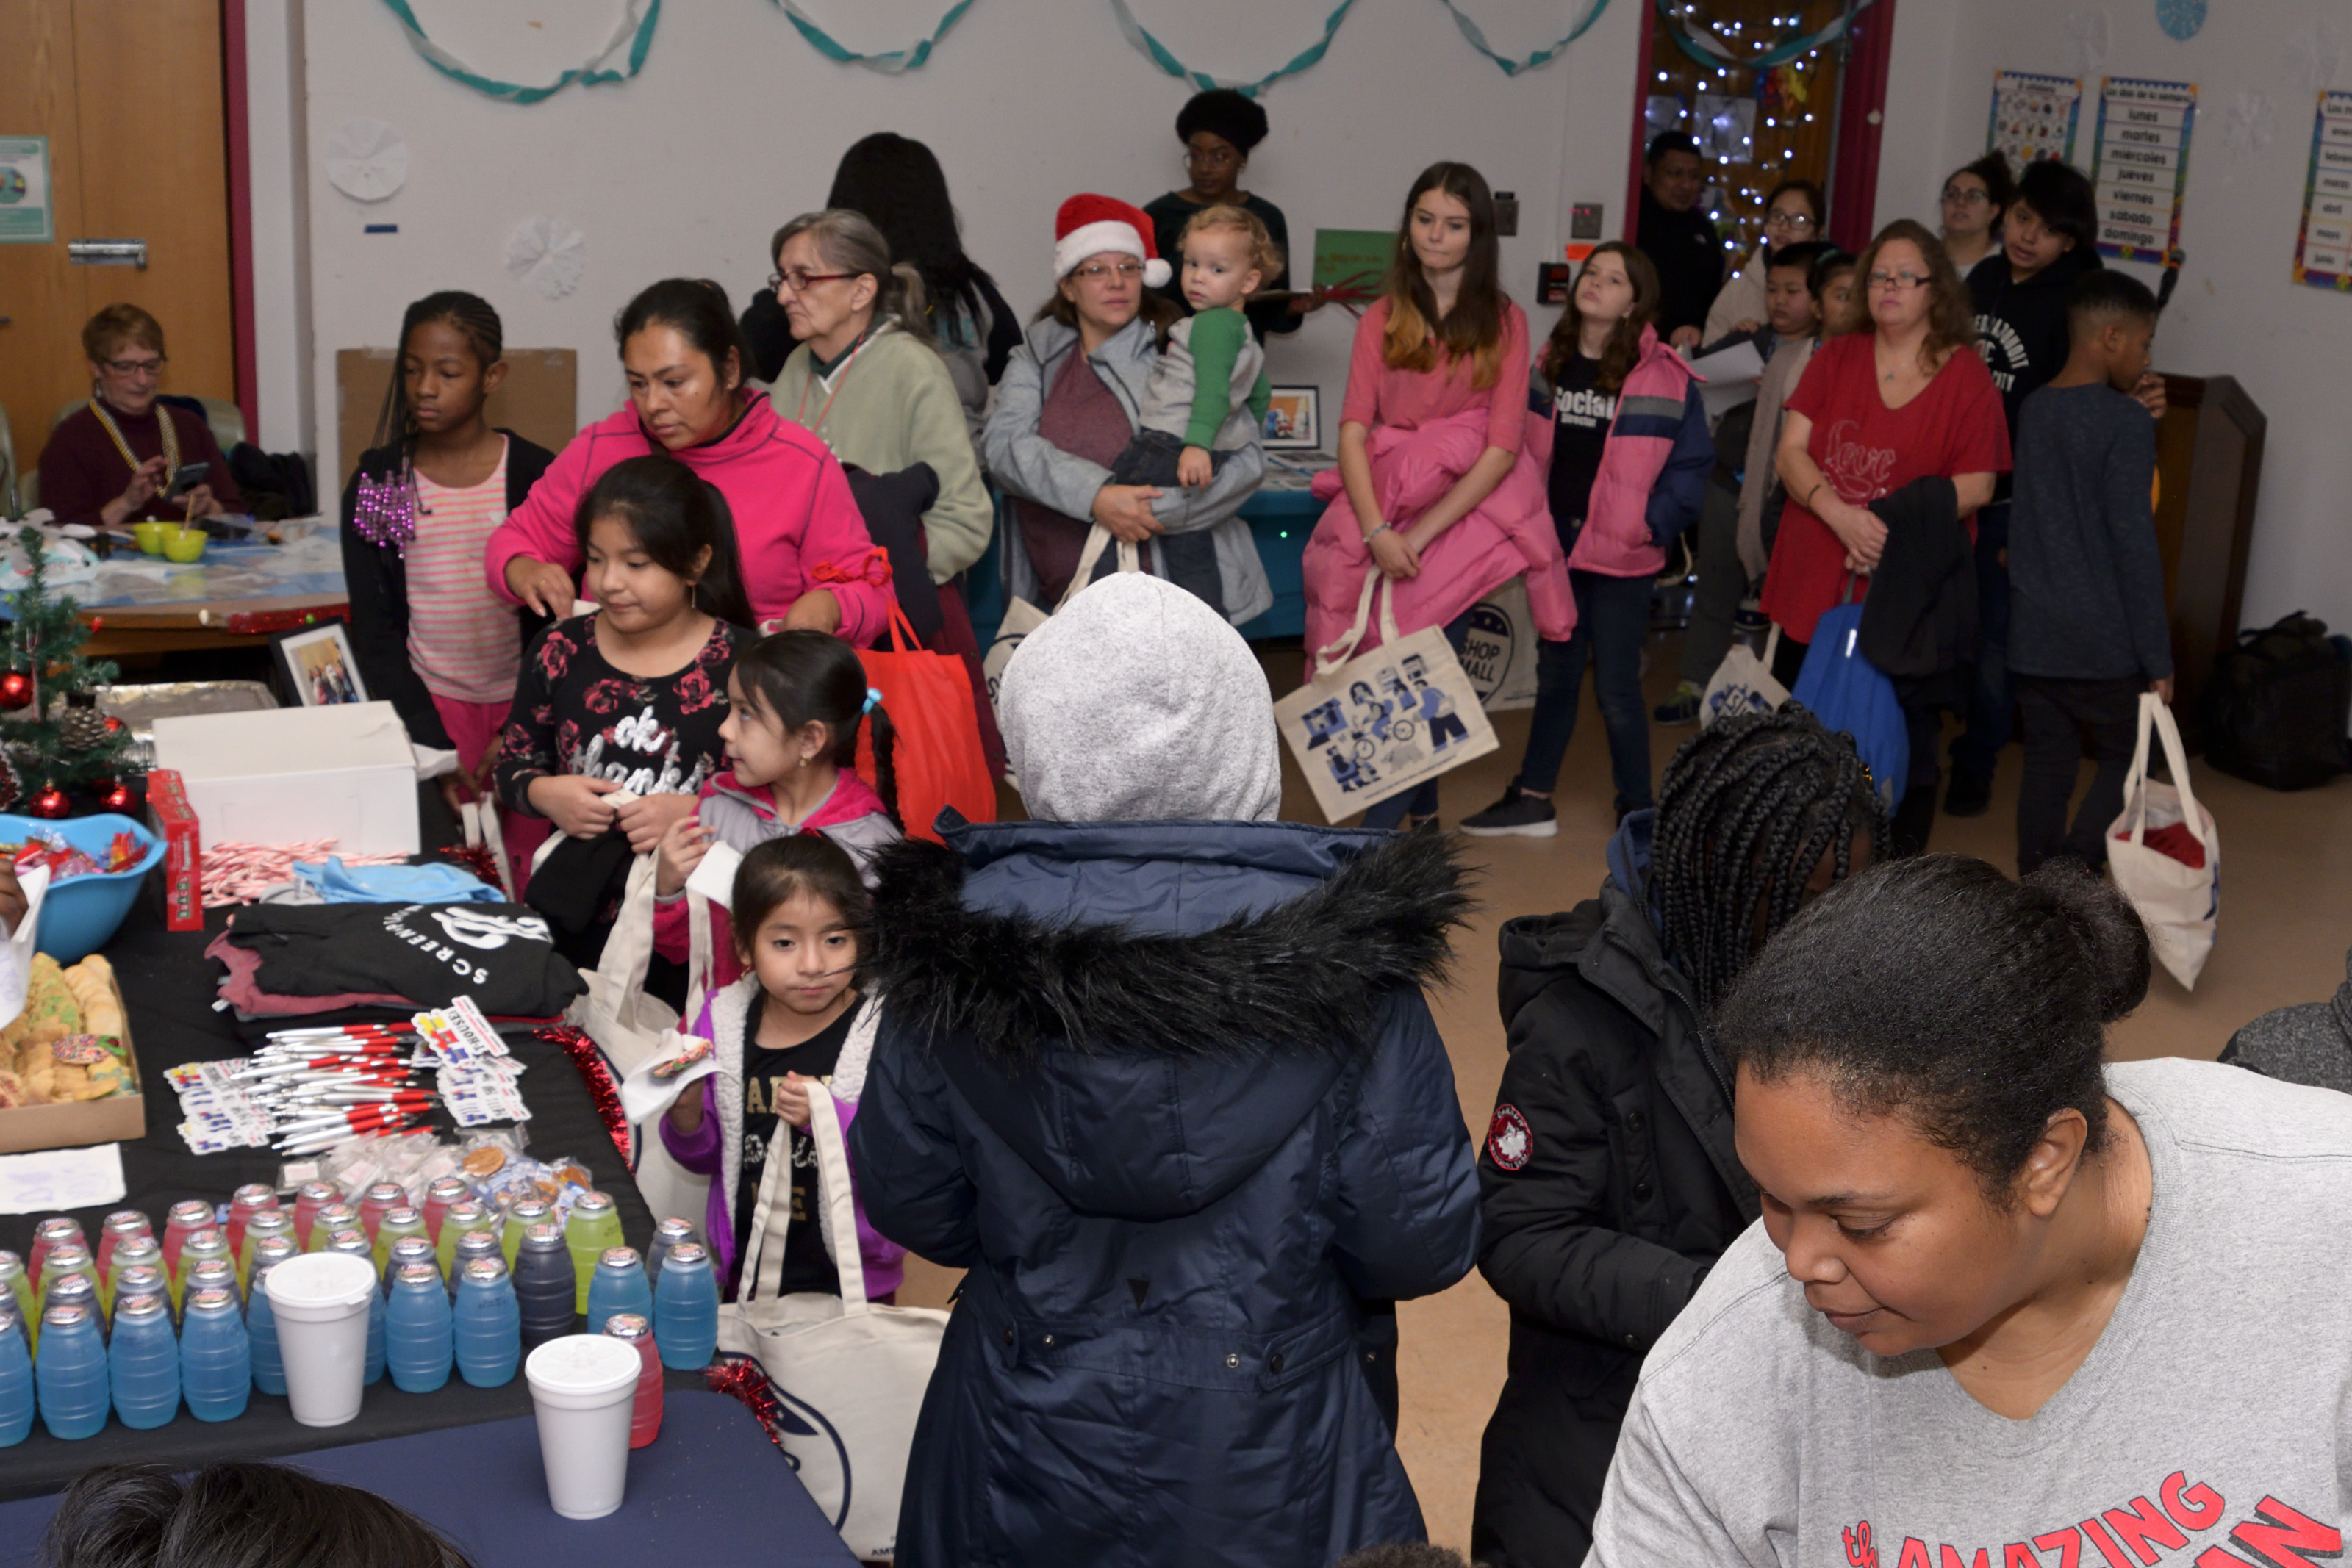 Families line up for toys, snacks, and games at the Annual Winter Festival in Olney. Bas Slabbers/WHYY